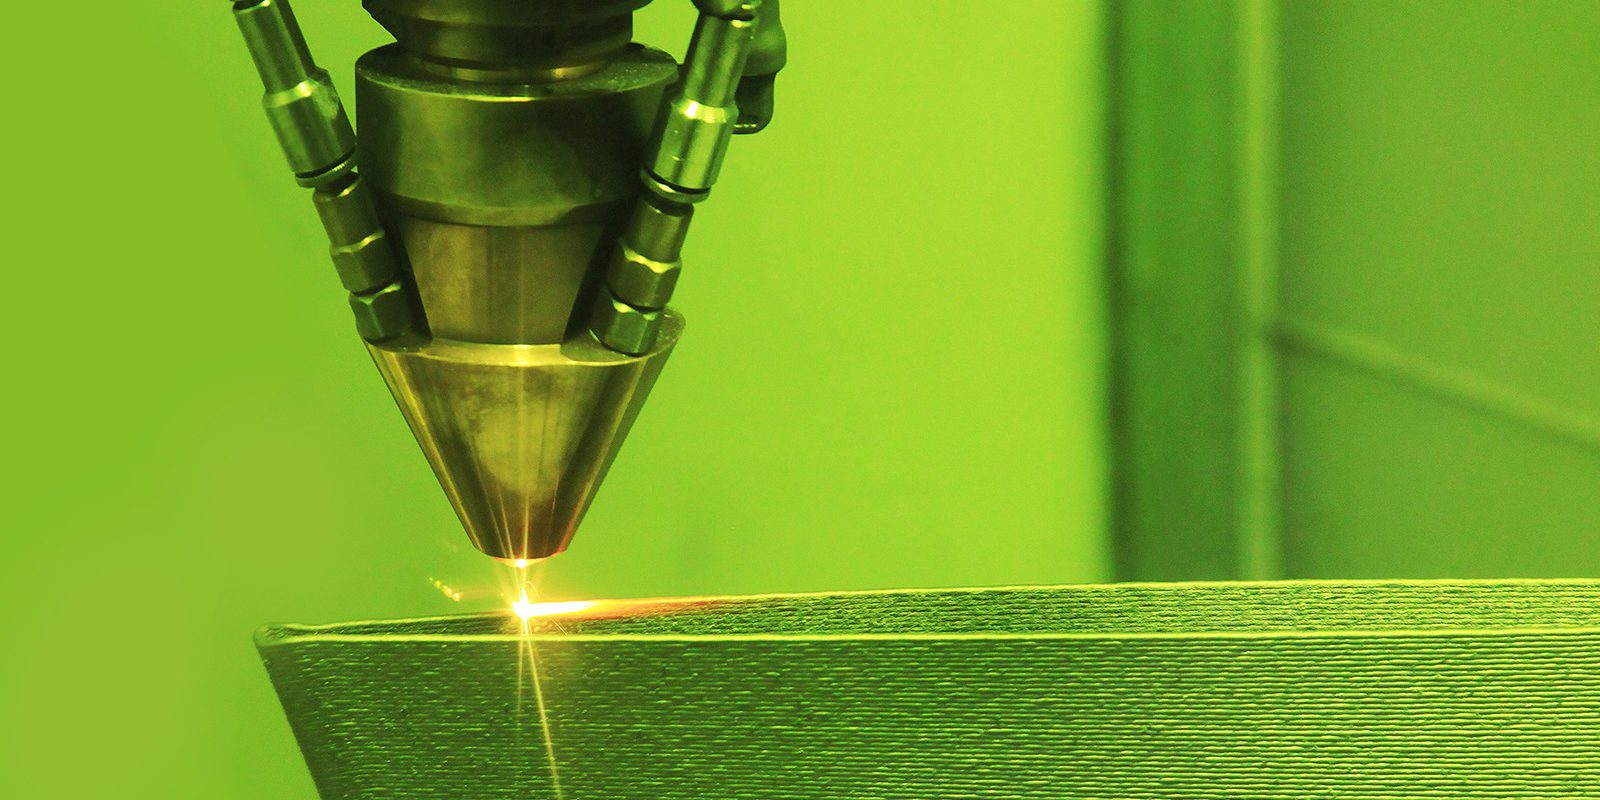 When 3-D printing metallic parts, Argonne scientists found a correlation between temperatures at the surface and defects that form below (image by Shutterstock/sspopov).